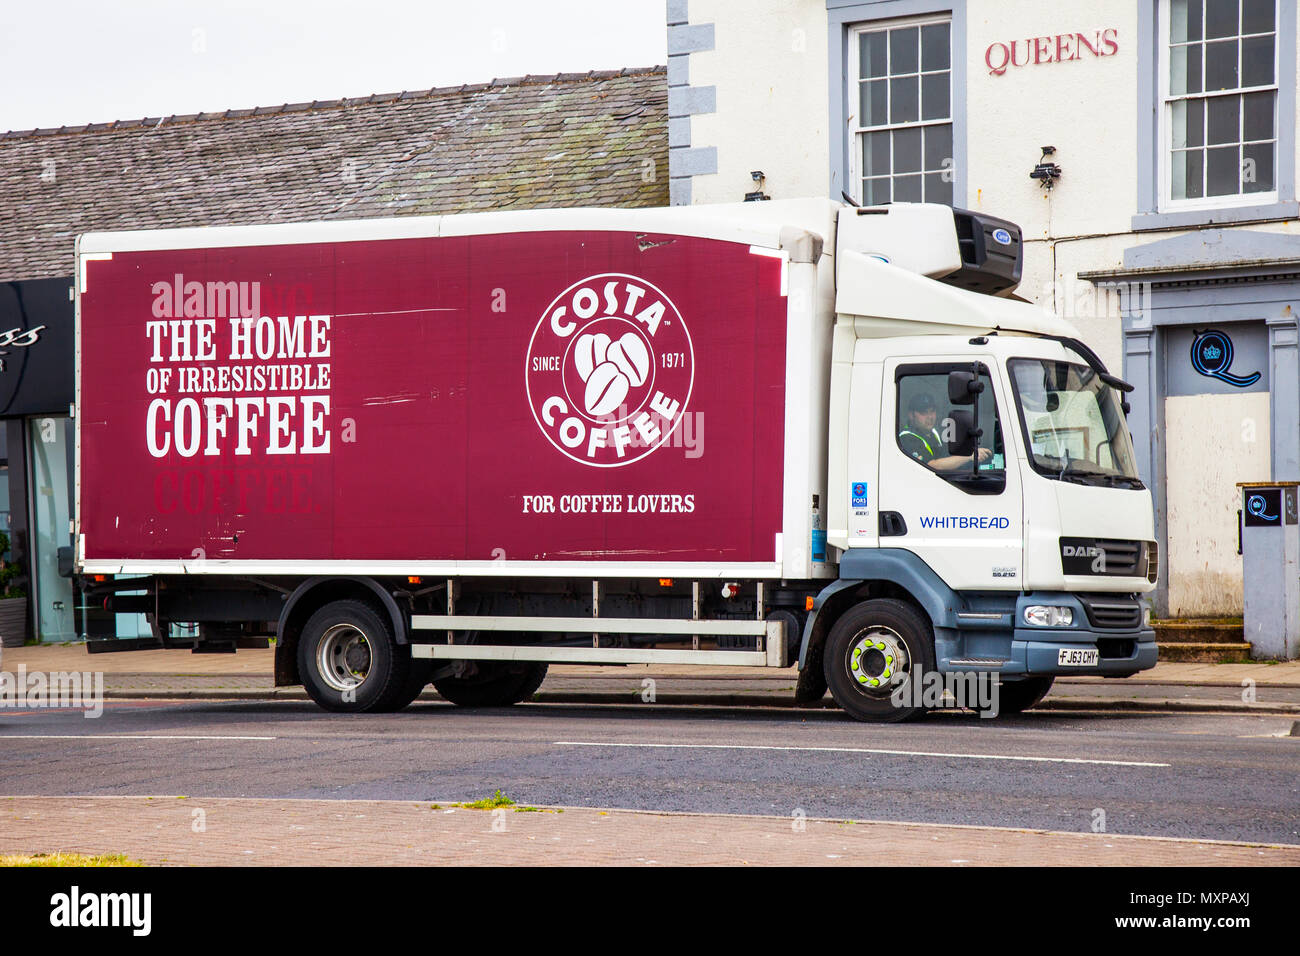 Whitbread Costa Coffee Delivery van, transport, transportation, truck, vehicle, car, cargo, shipping, business, commercial, white, courier, lorry, shipment, service vehicle parked in Morecambe, UK - Stock Image